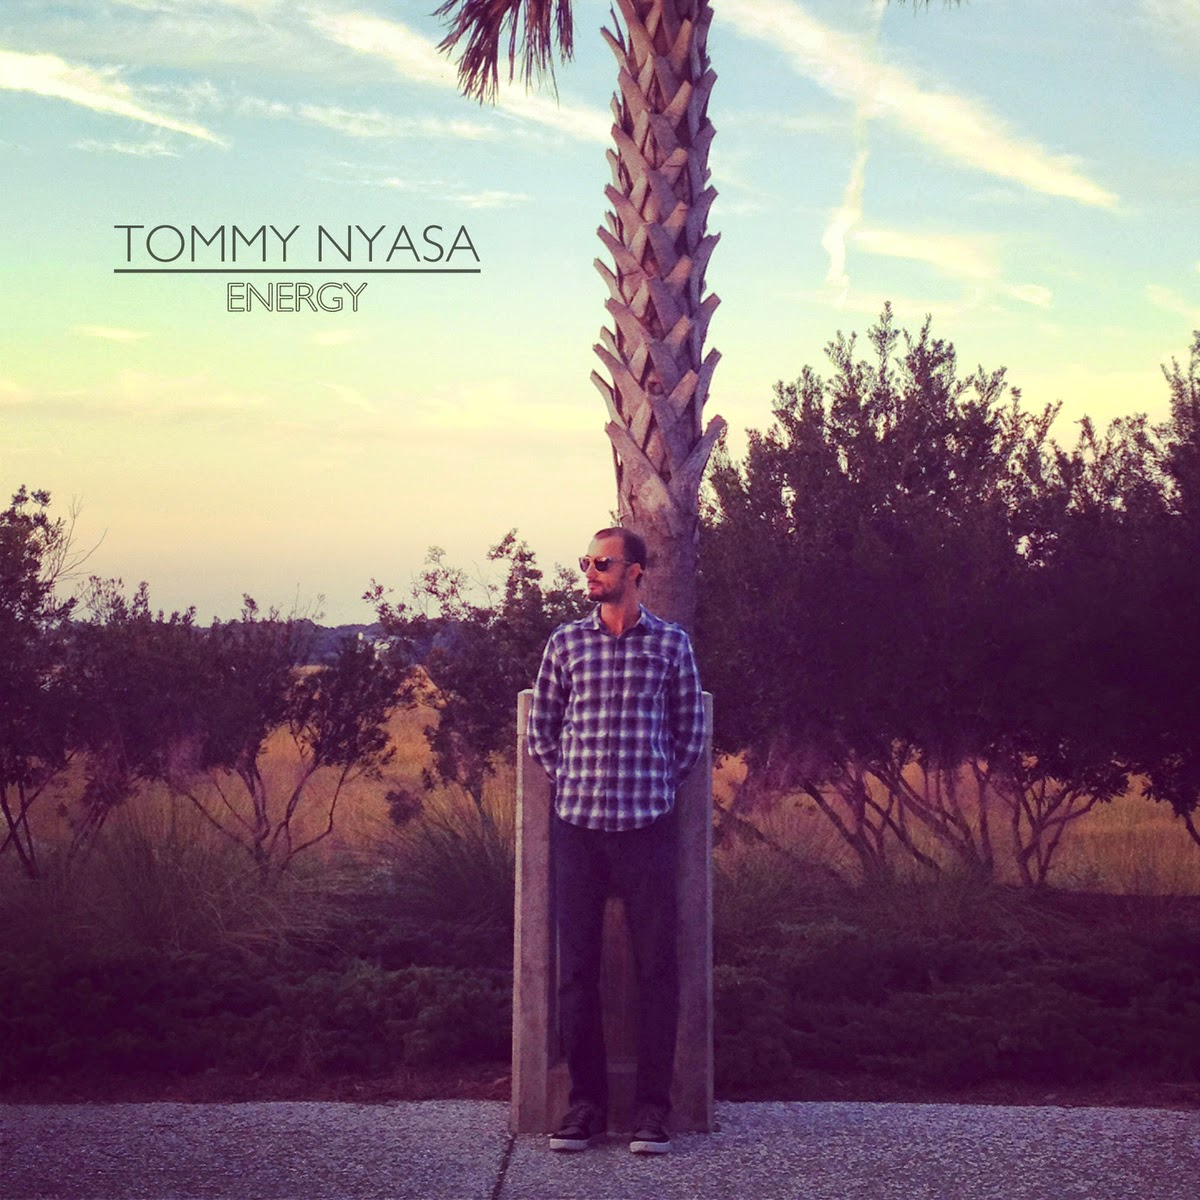 http://www.d4am.net/2014/05/tommy-nyasa-energy.html